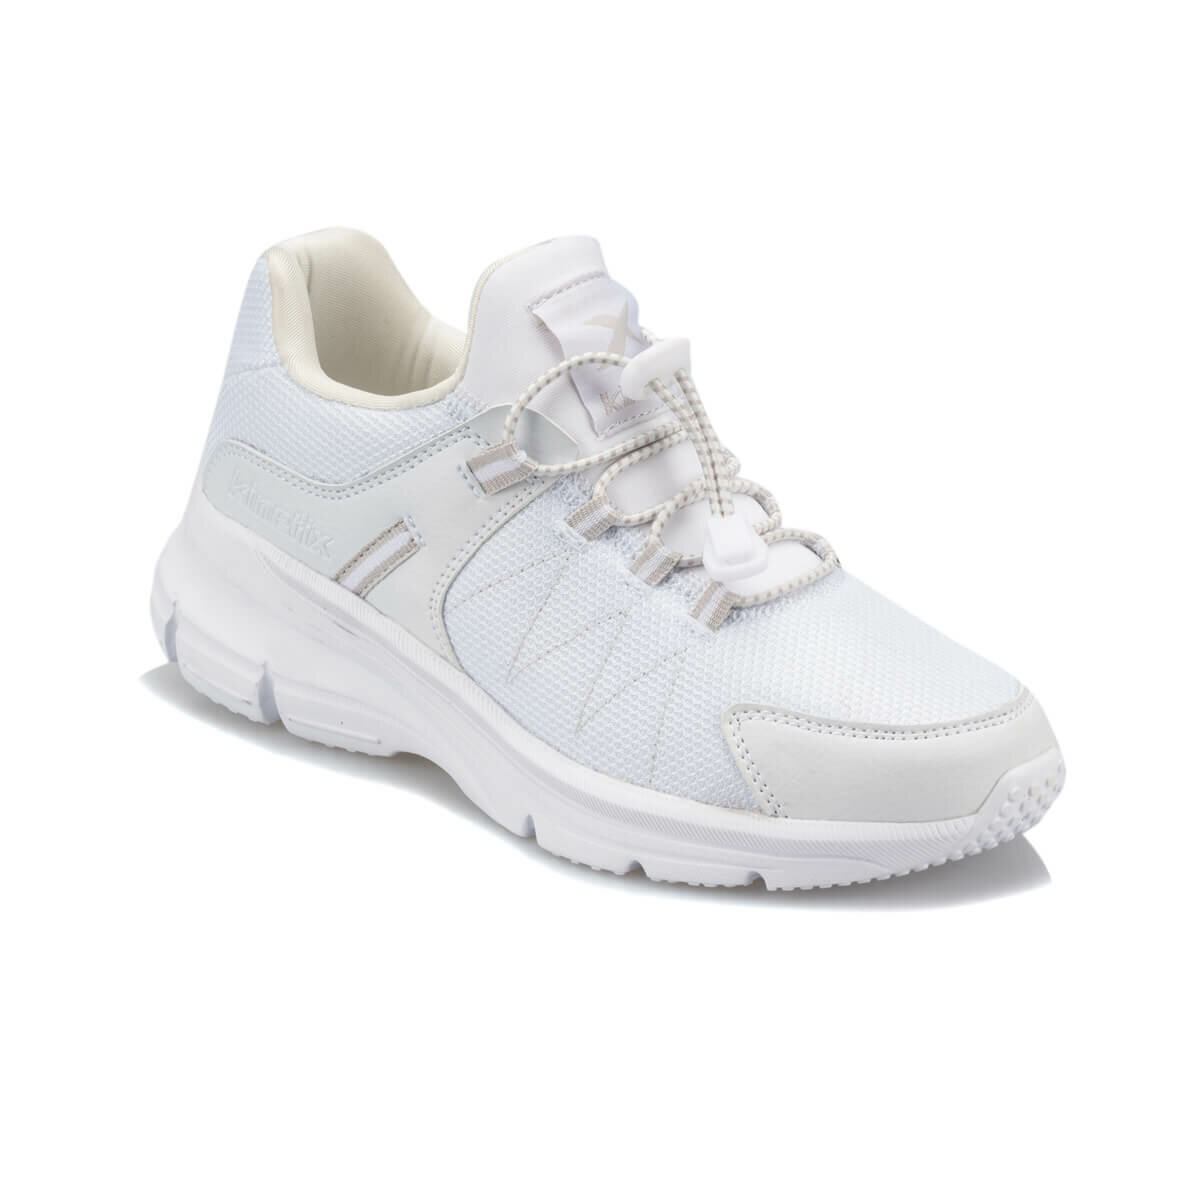 TO FLO W 9PR White Women 'S Comfort Shoes KINETIX